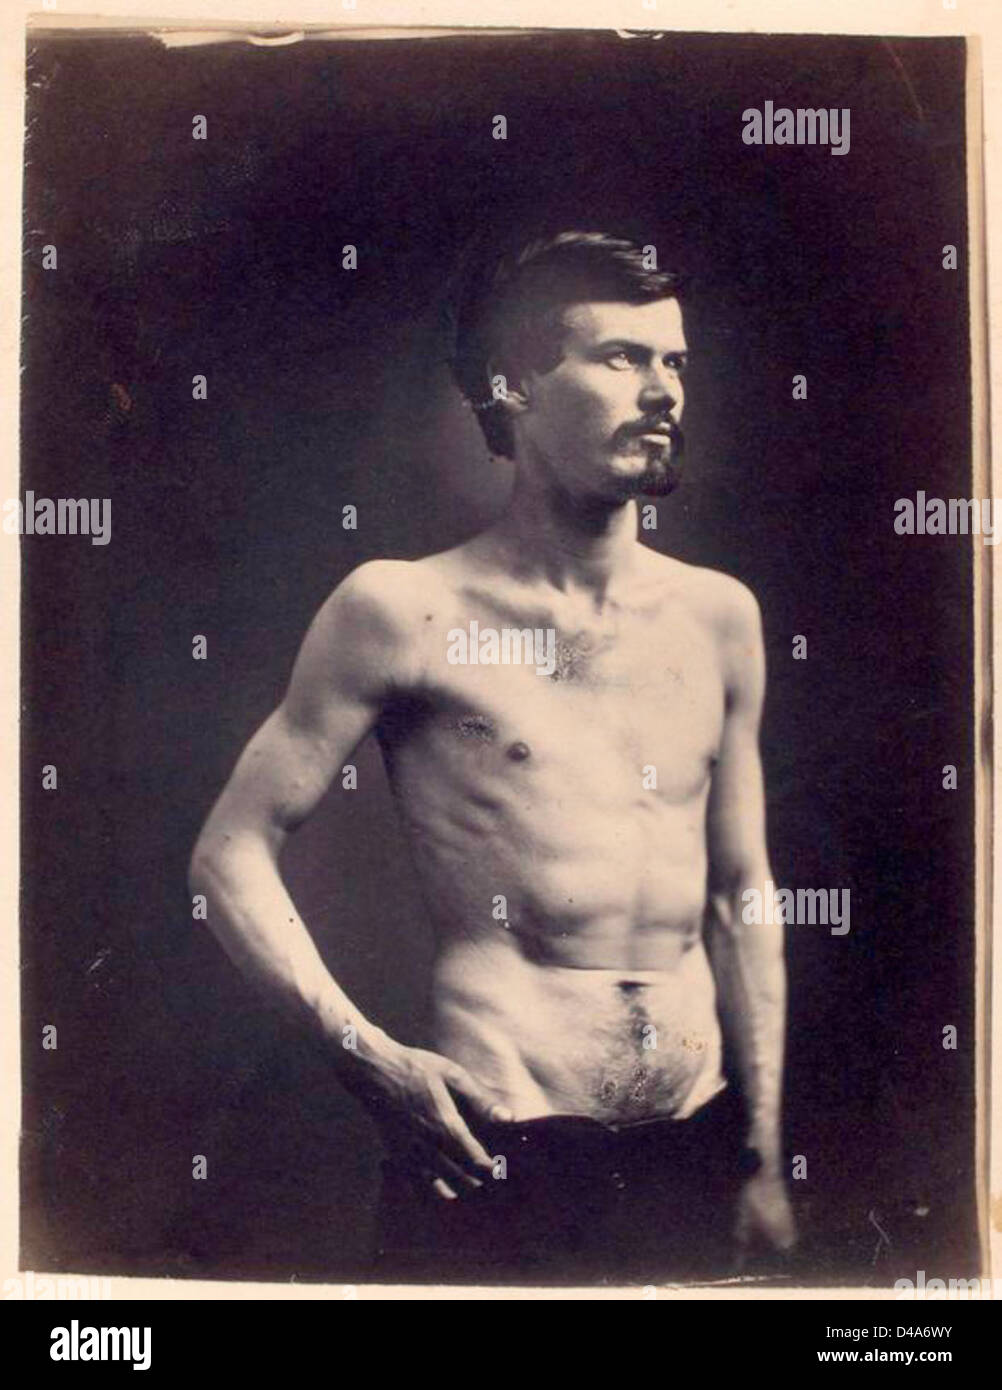 [James Brownlee : Wounds in chest & abdomen.] - Stock Image